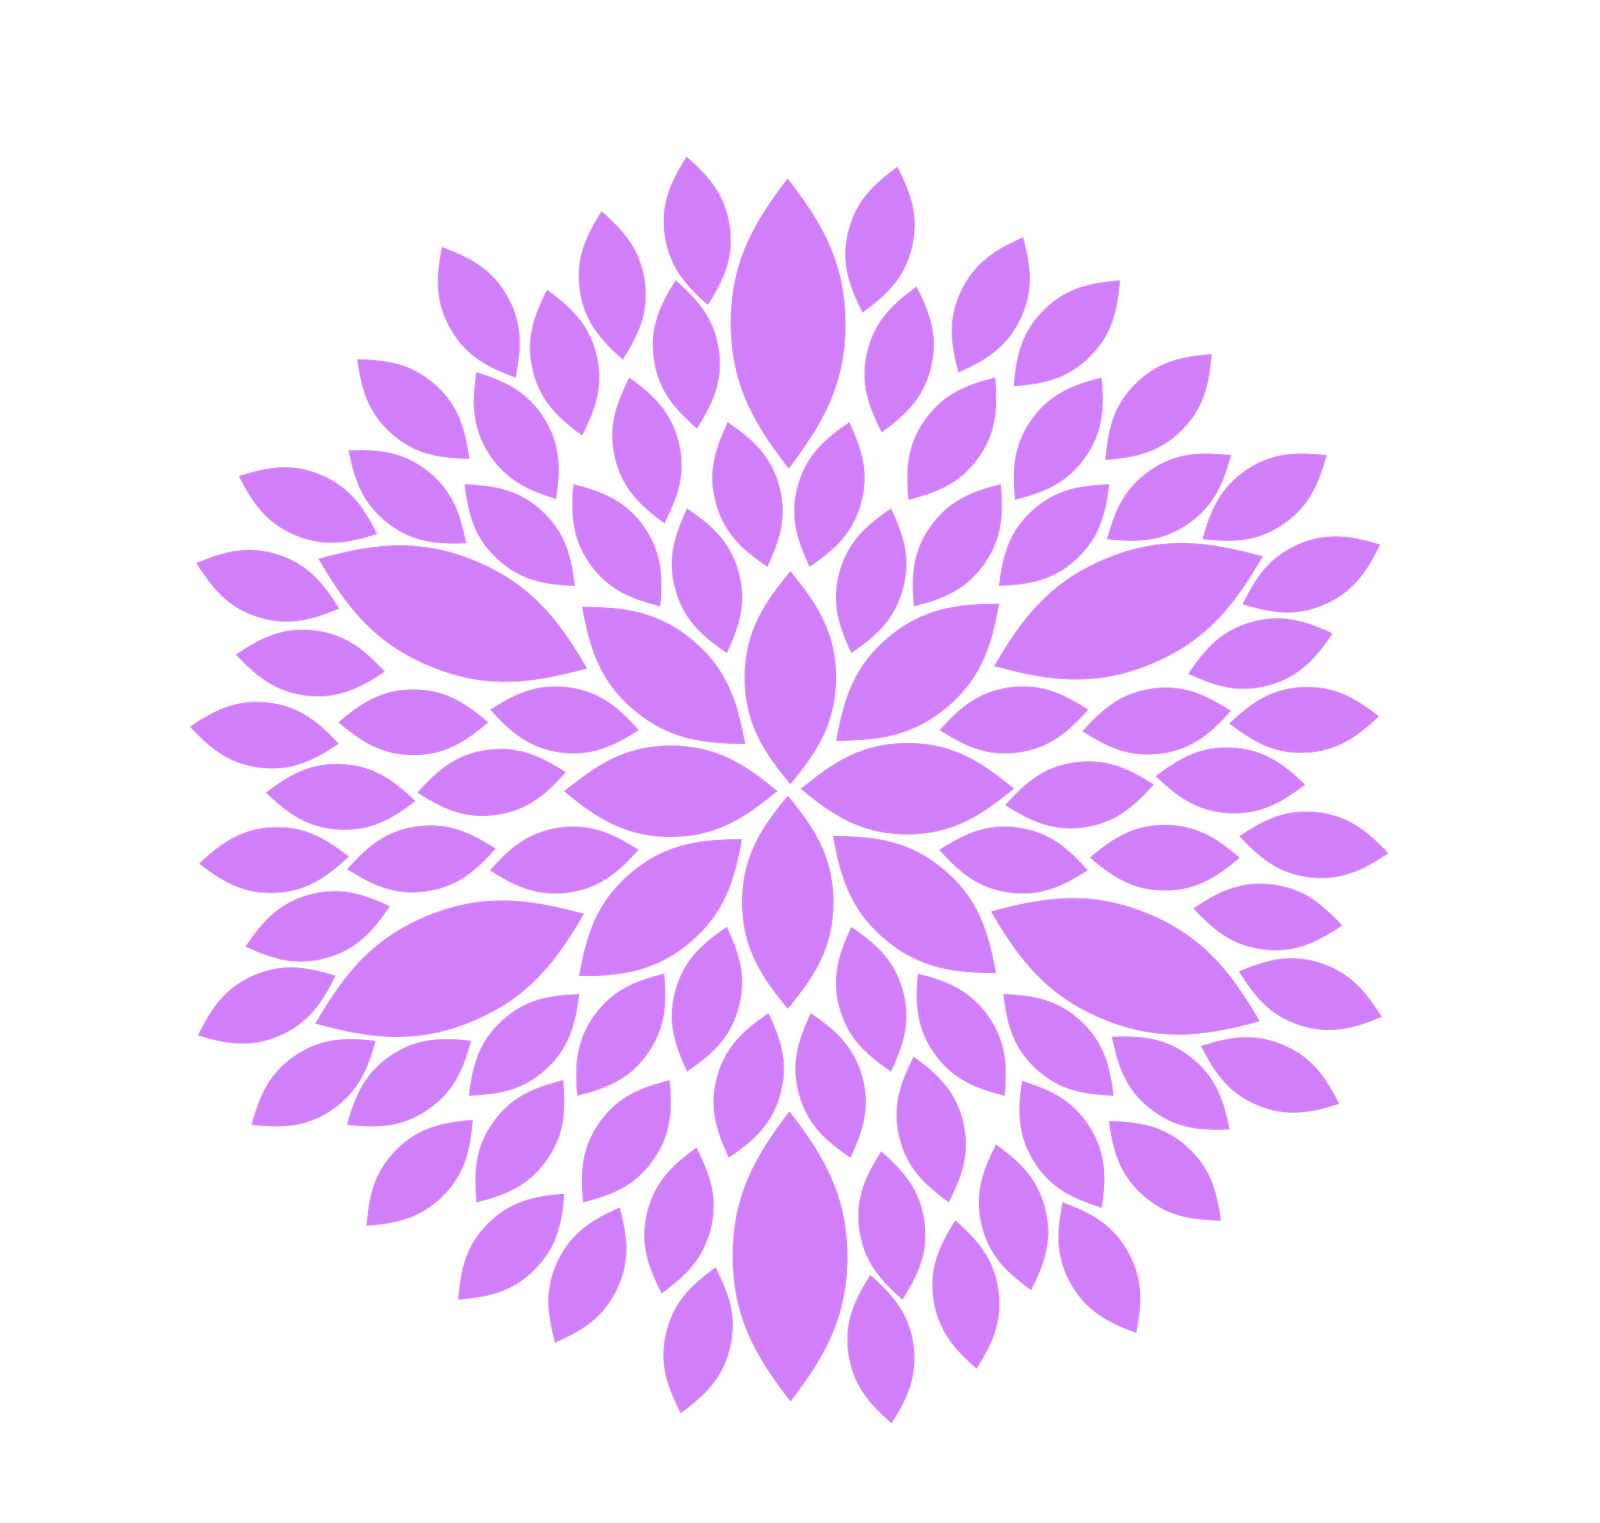 hight resolution of flower clipart beautiful purple free clipart get this flower